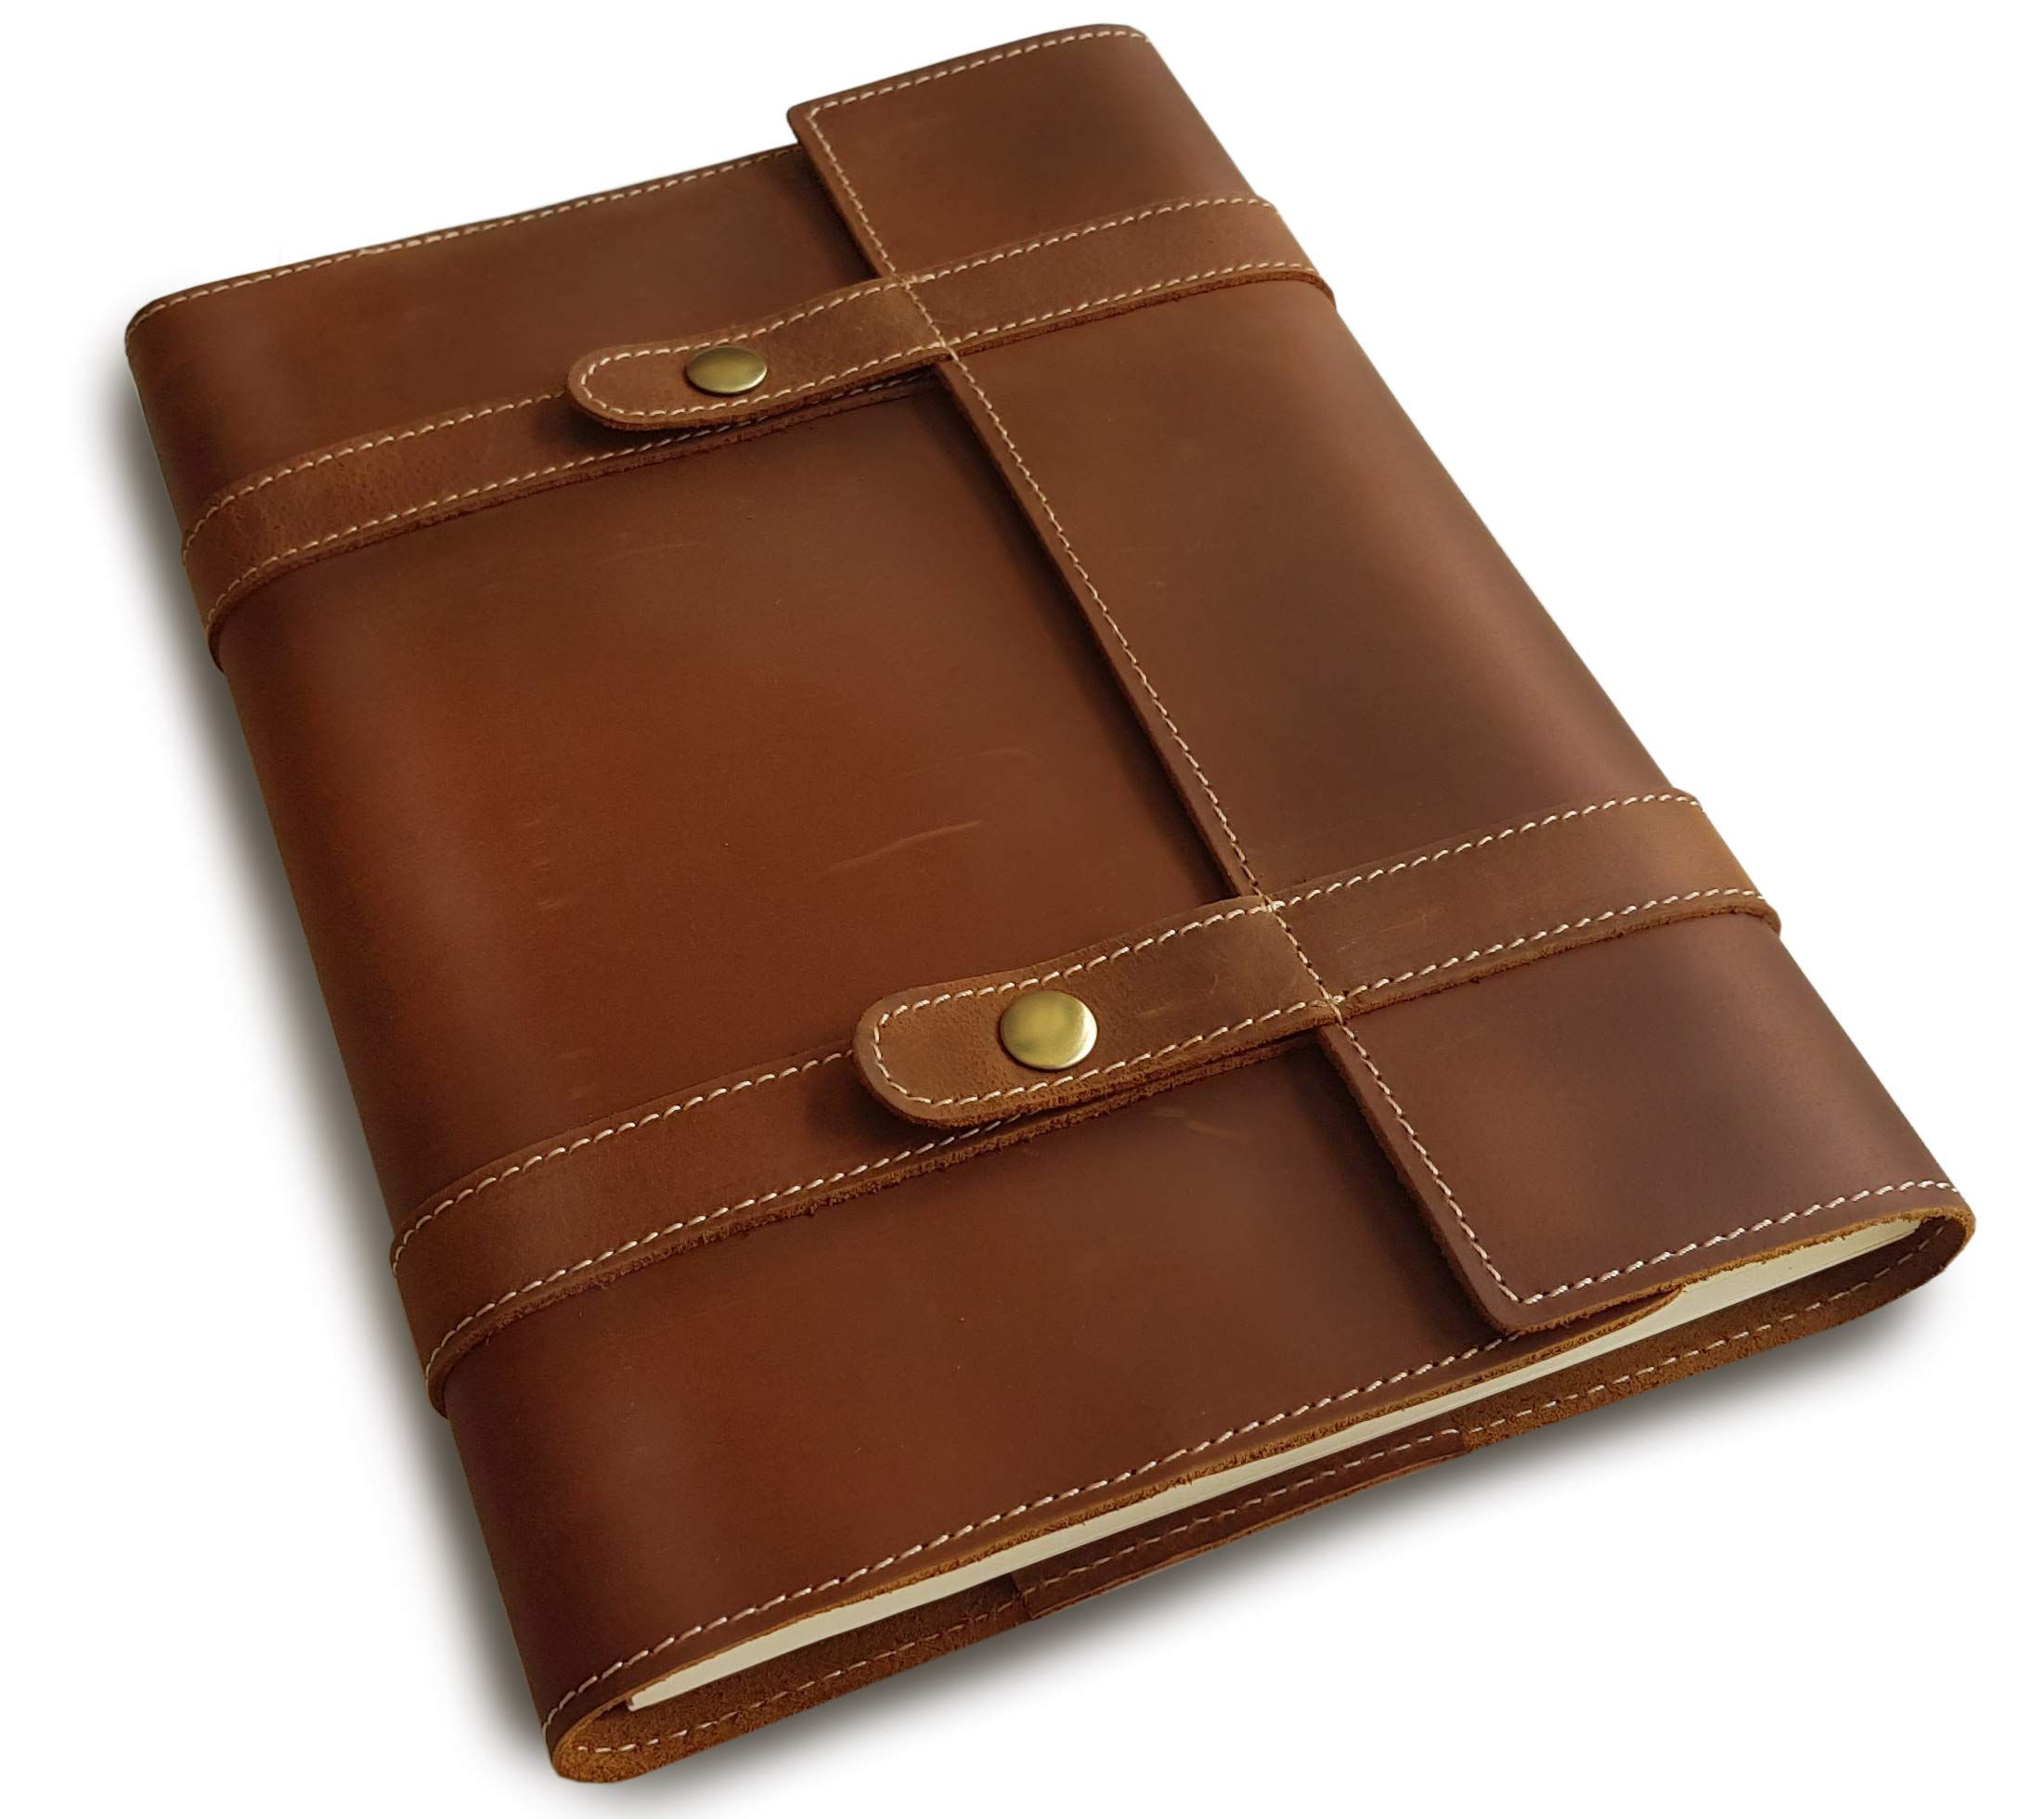 Le Vent Professional Portfolio, Genuine Handmade Leather, with A4 Spiral Lined (Ruled) Notebook 200 Pages, 8.27x11.69 Inches, Vintage Brown Refillable Journal by le vent